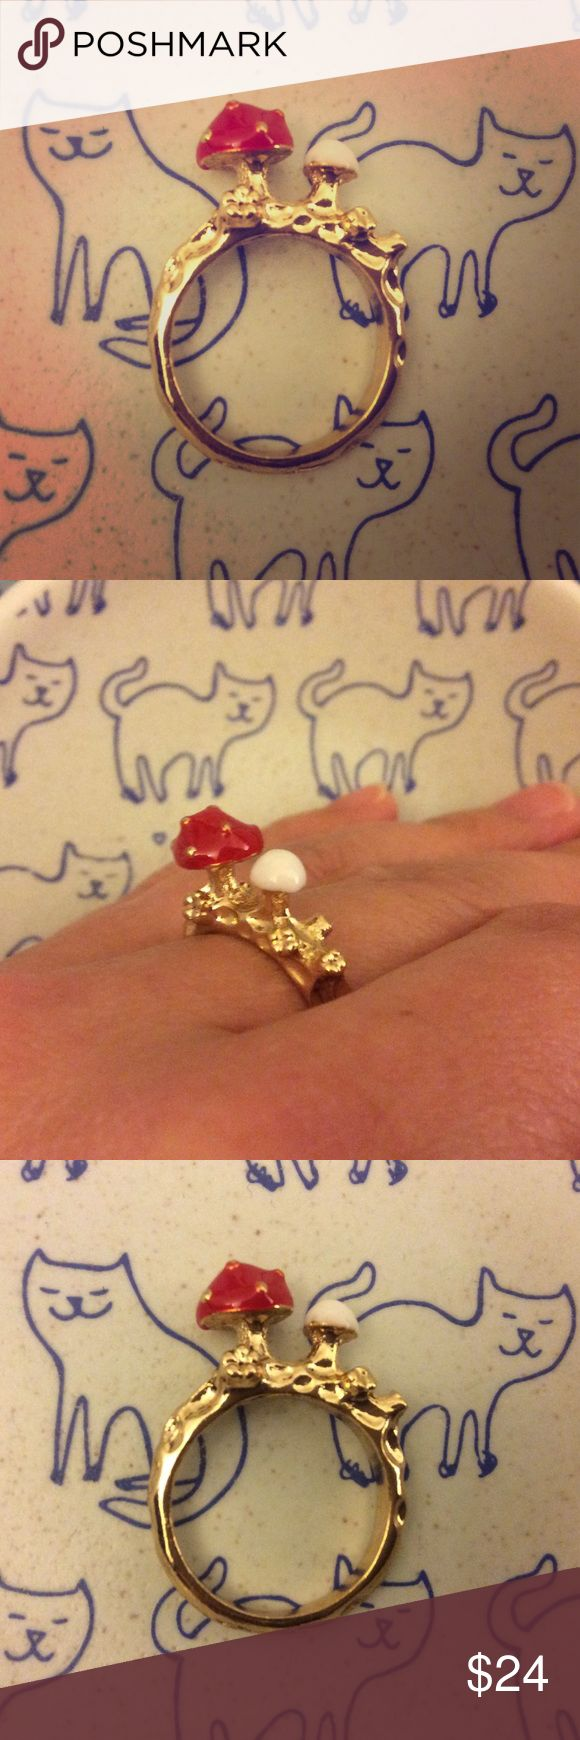 ⭐️ BUNDLED ⭐️ Tiny mushroom ring cute kawaii This adorable ring features a red cap mushroom and a tiny white shroom next to it. Gold colored hardware. Approximate size 7. Purchased from our last trip to Tokyo Japan. Check out our other listings to bundle! Not urban outfitters. Super cute  kawaii  kitsch  indie  adorable  Japanese  Japan ASOS Jewelry Rings